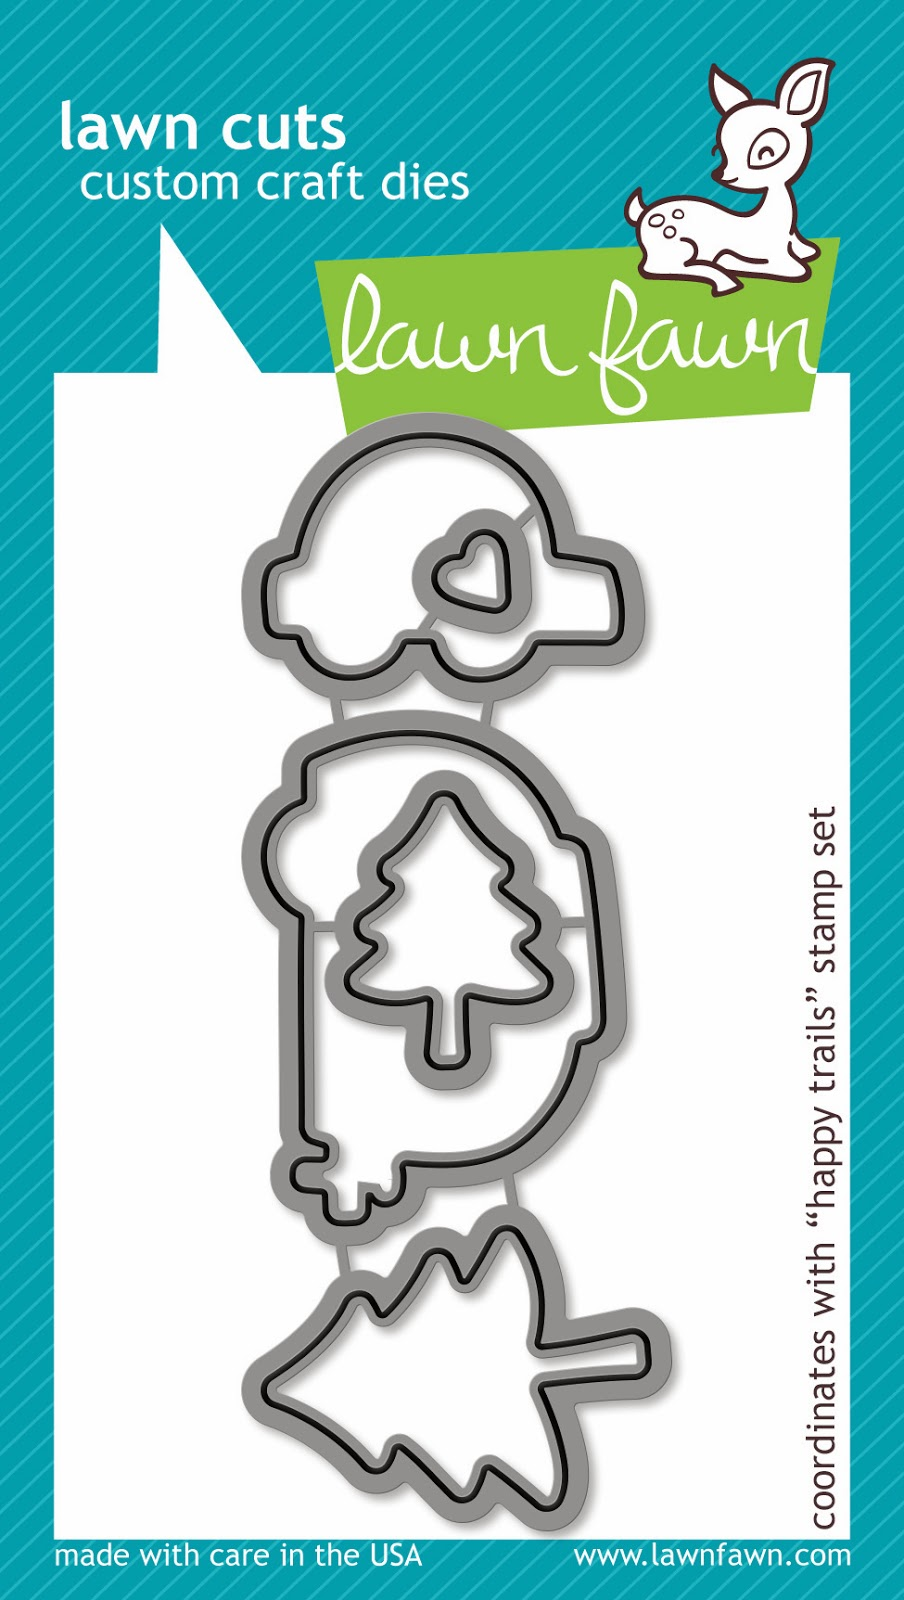 http://www.lawnfawn.com/collections/new-products/products/happy-trails-lawn-cuts